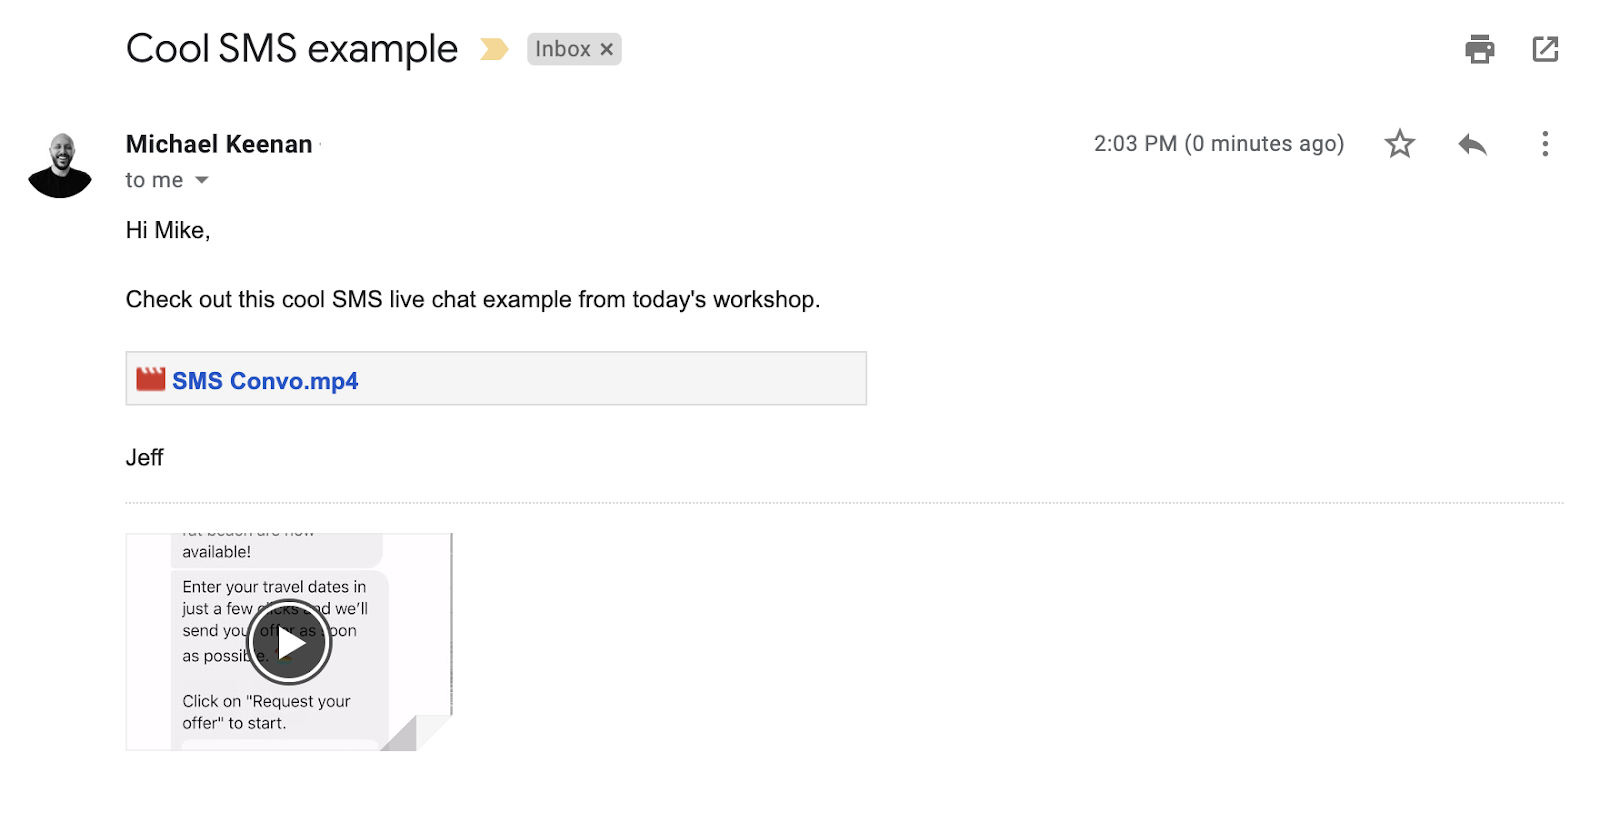 Cool SMS example email sent with video